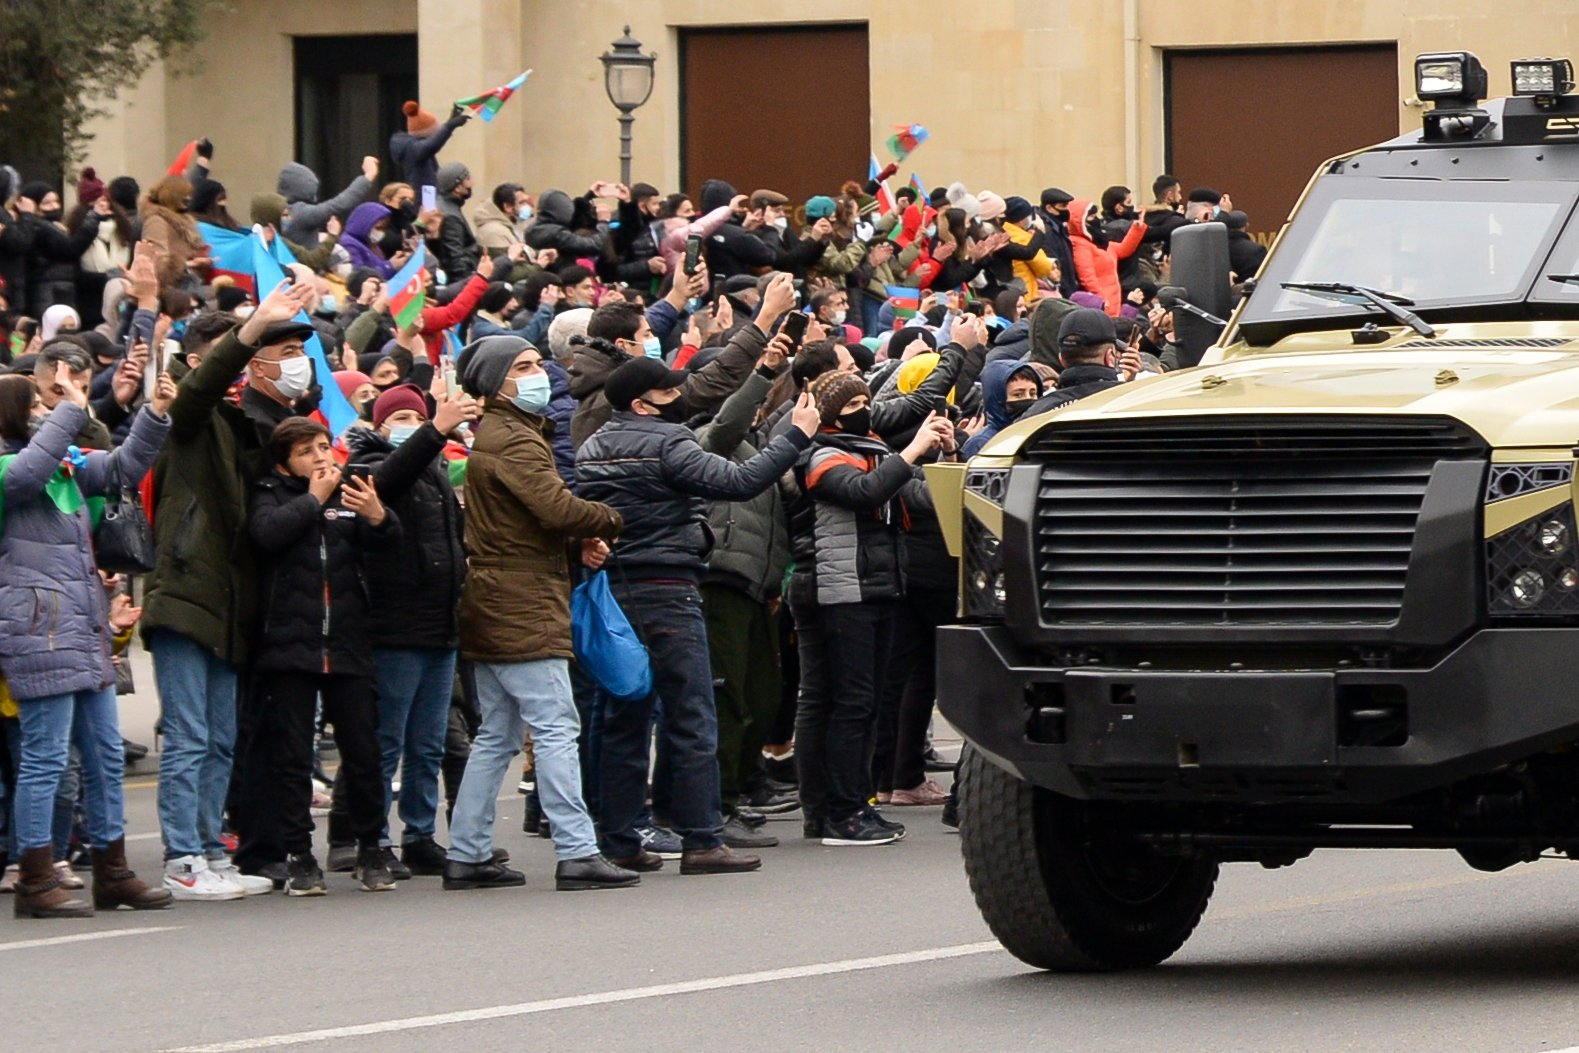 People greet Azerbaijani servicepeople riding in military vehicles during a parade marking Azerbaijan's victory against Armenia in their conflict for control over the Nagorno-Karabakh region, in Baku on Dec. 10, 2020. (AFP)